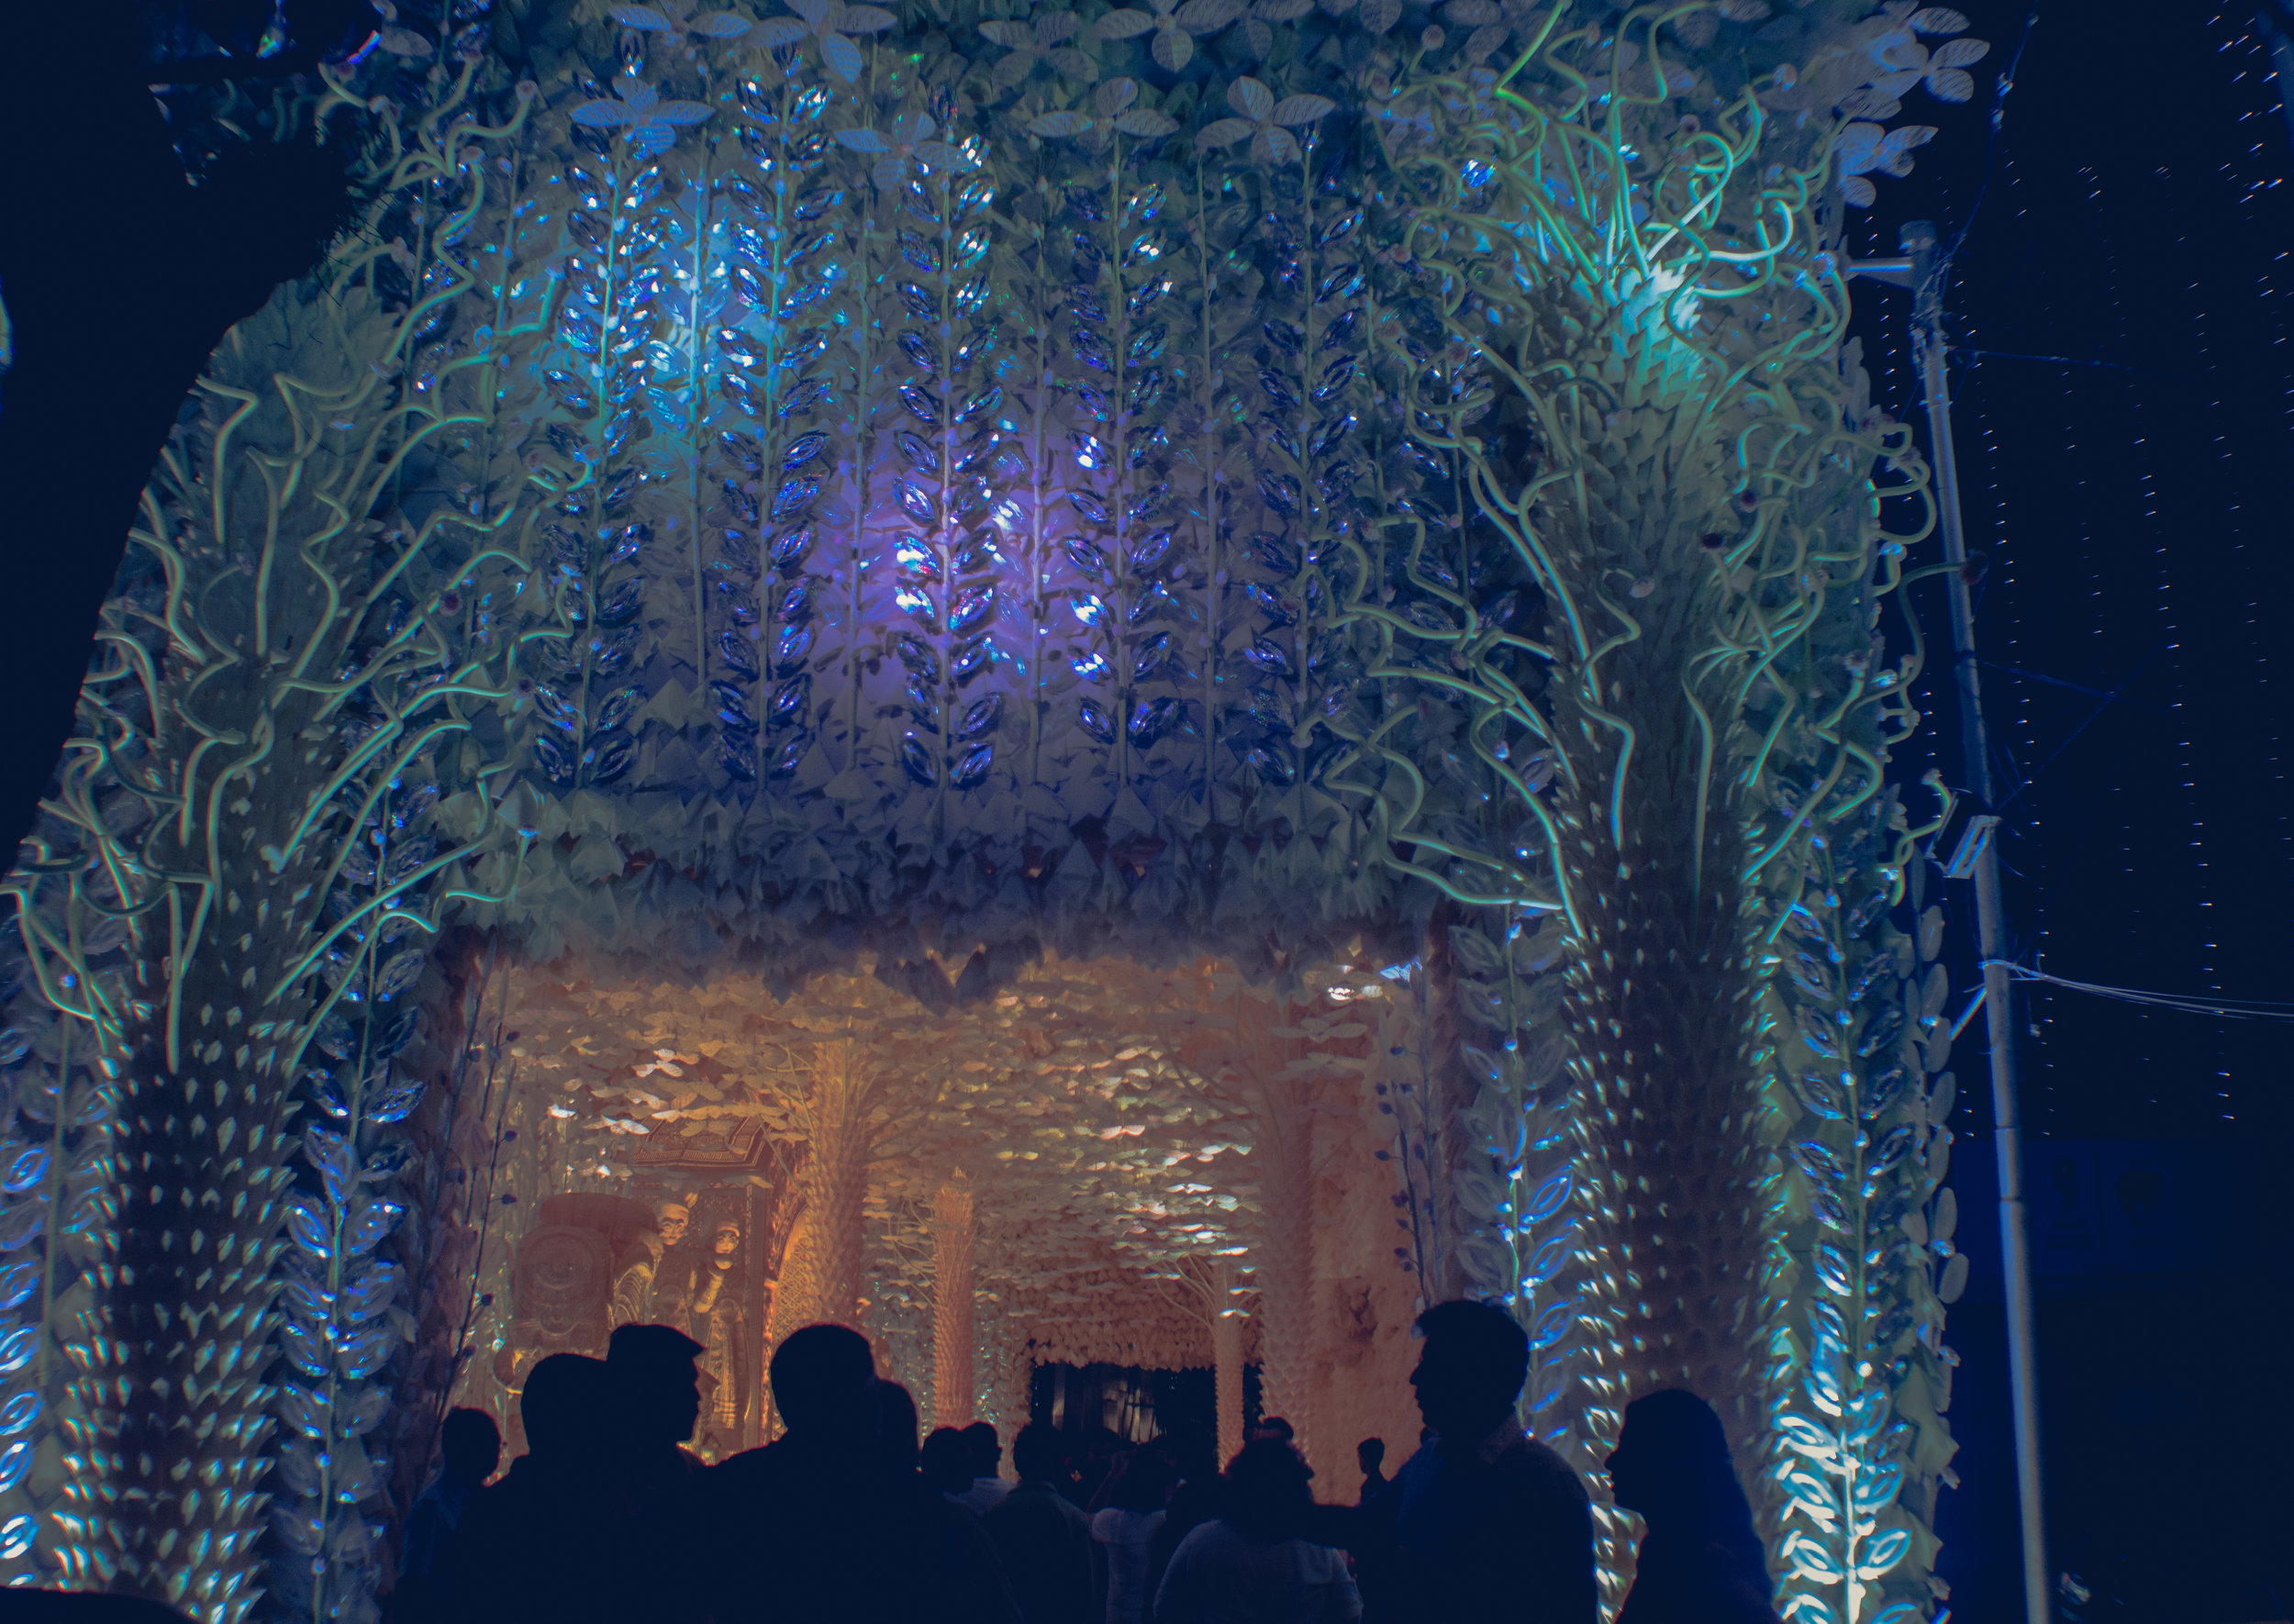 At the entrance to Mudiali Club, crowds of people gather on the third night of the festival to see Kolkata's artistry.